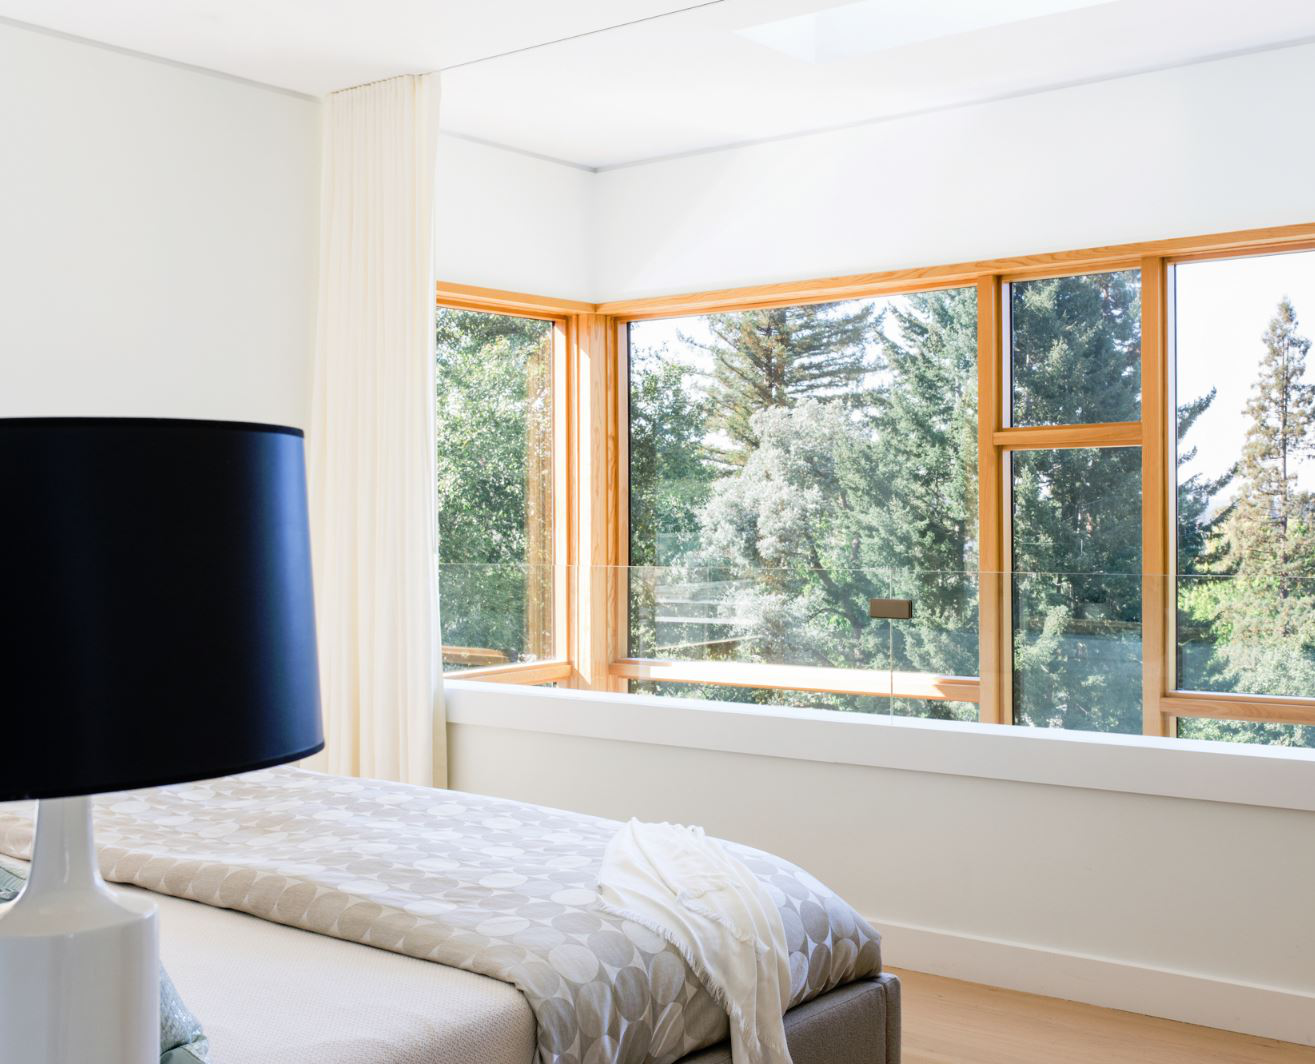 The master bedroom was designed as a loft space. The open volume in front of the large windows—and the skylight above—act as a natural ventilation path to evacuate warm air and capture cool breezes, so that air conditioning is needed only on the hottest days.